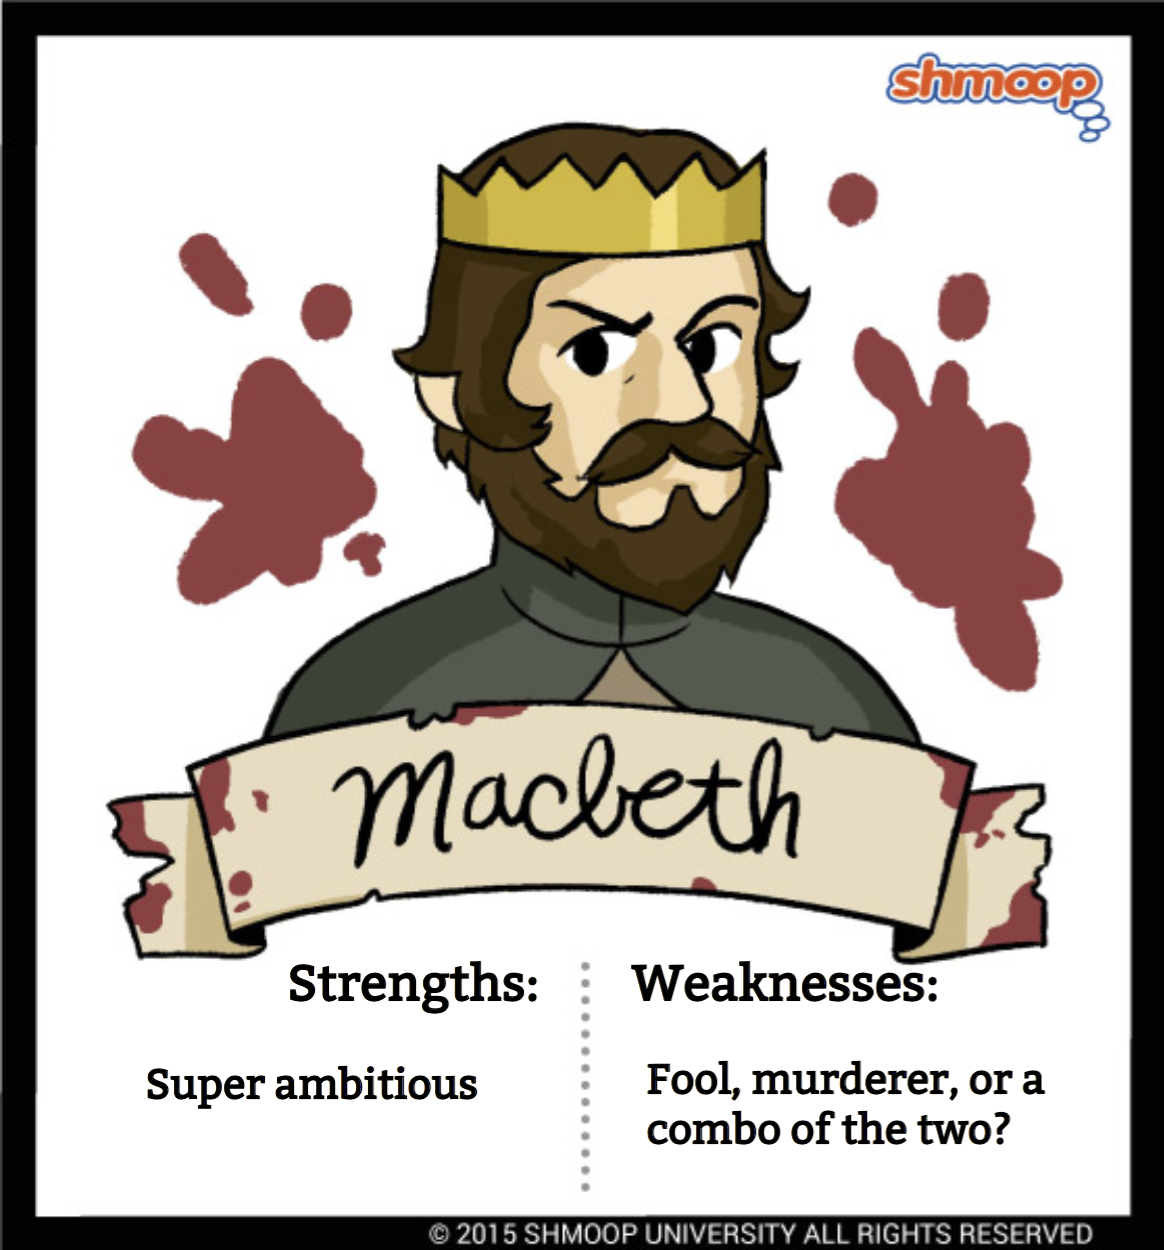 "macbeth anti hero essay In the play ""macbeth"", the plot focuses around a war hero who becomes greedy for power, which leads to his ultimate coronation as king."